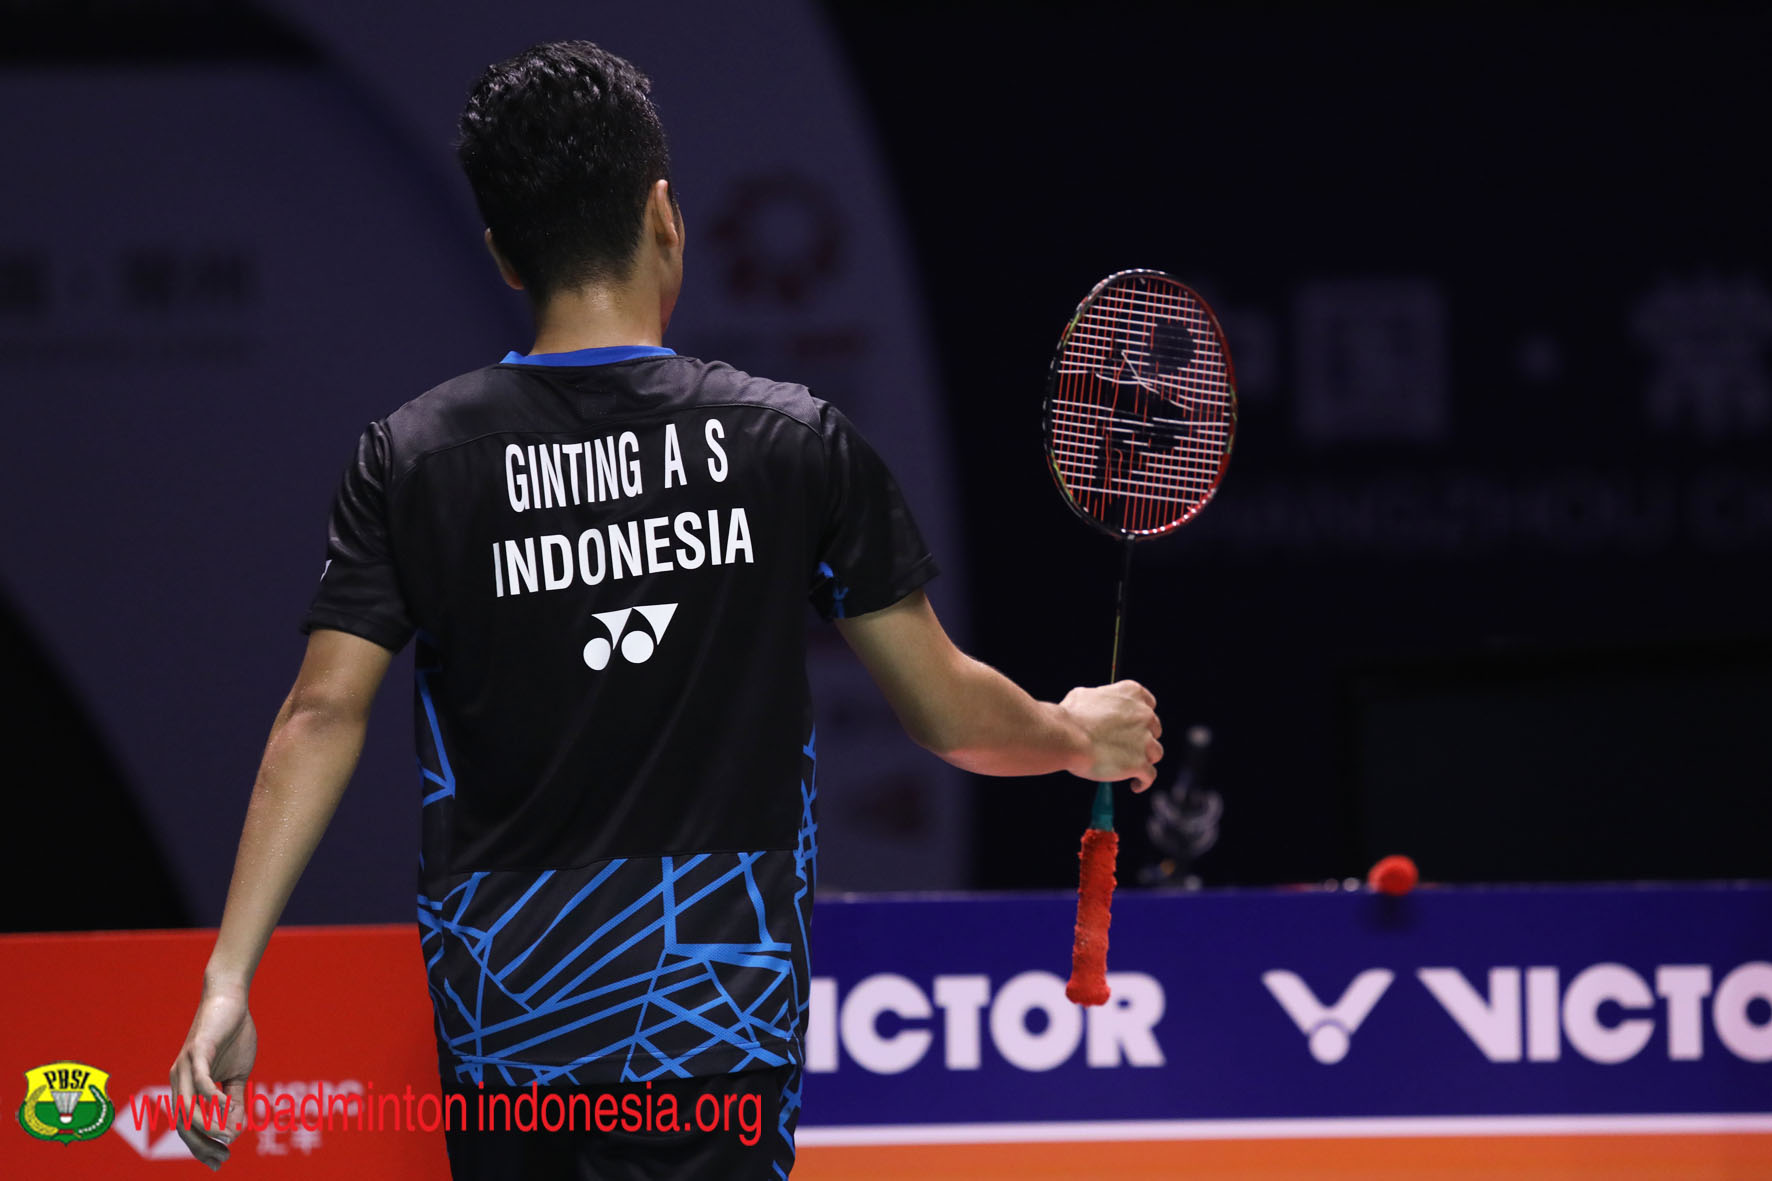 https: img-k.okeinfo.net content 2018 11 09 40 1975744 komentar-anthony-ginting-usai-gagal-ke-semifinal-china-open-750-2018-kNHGqX8ZR0.jpg